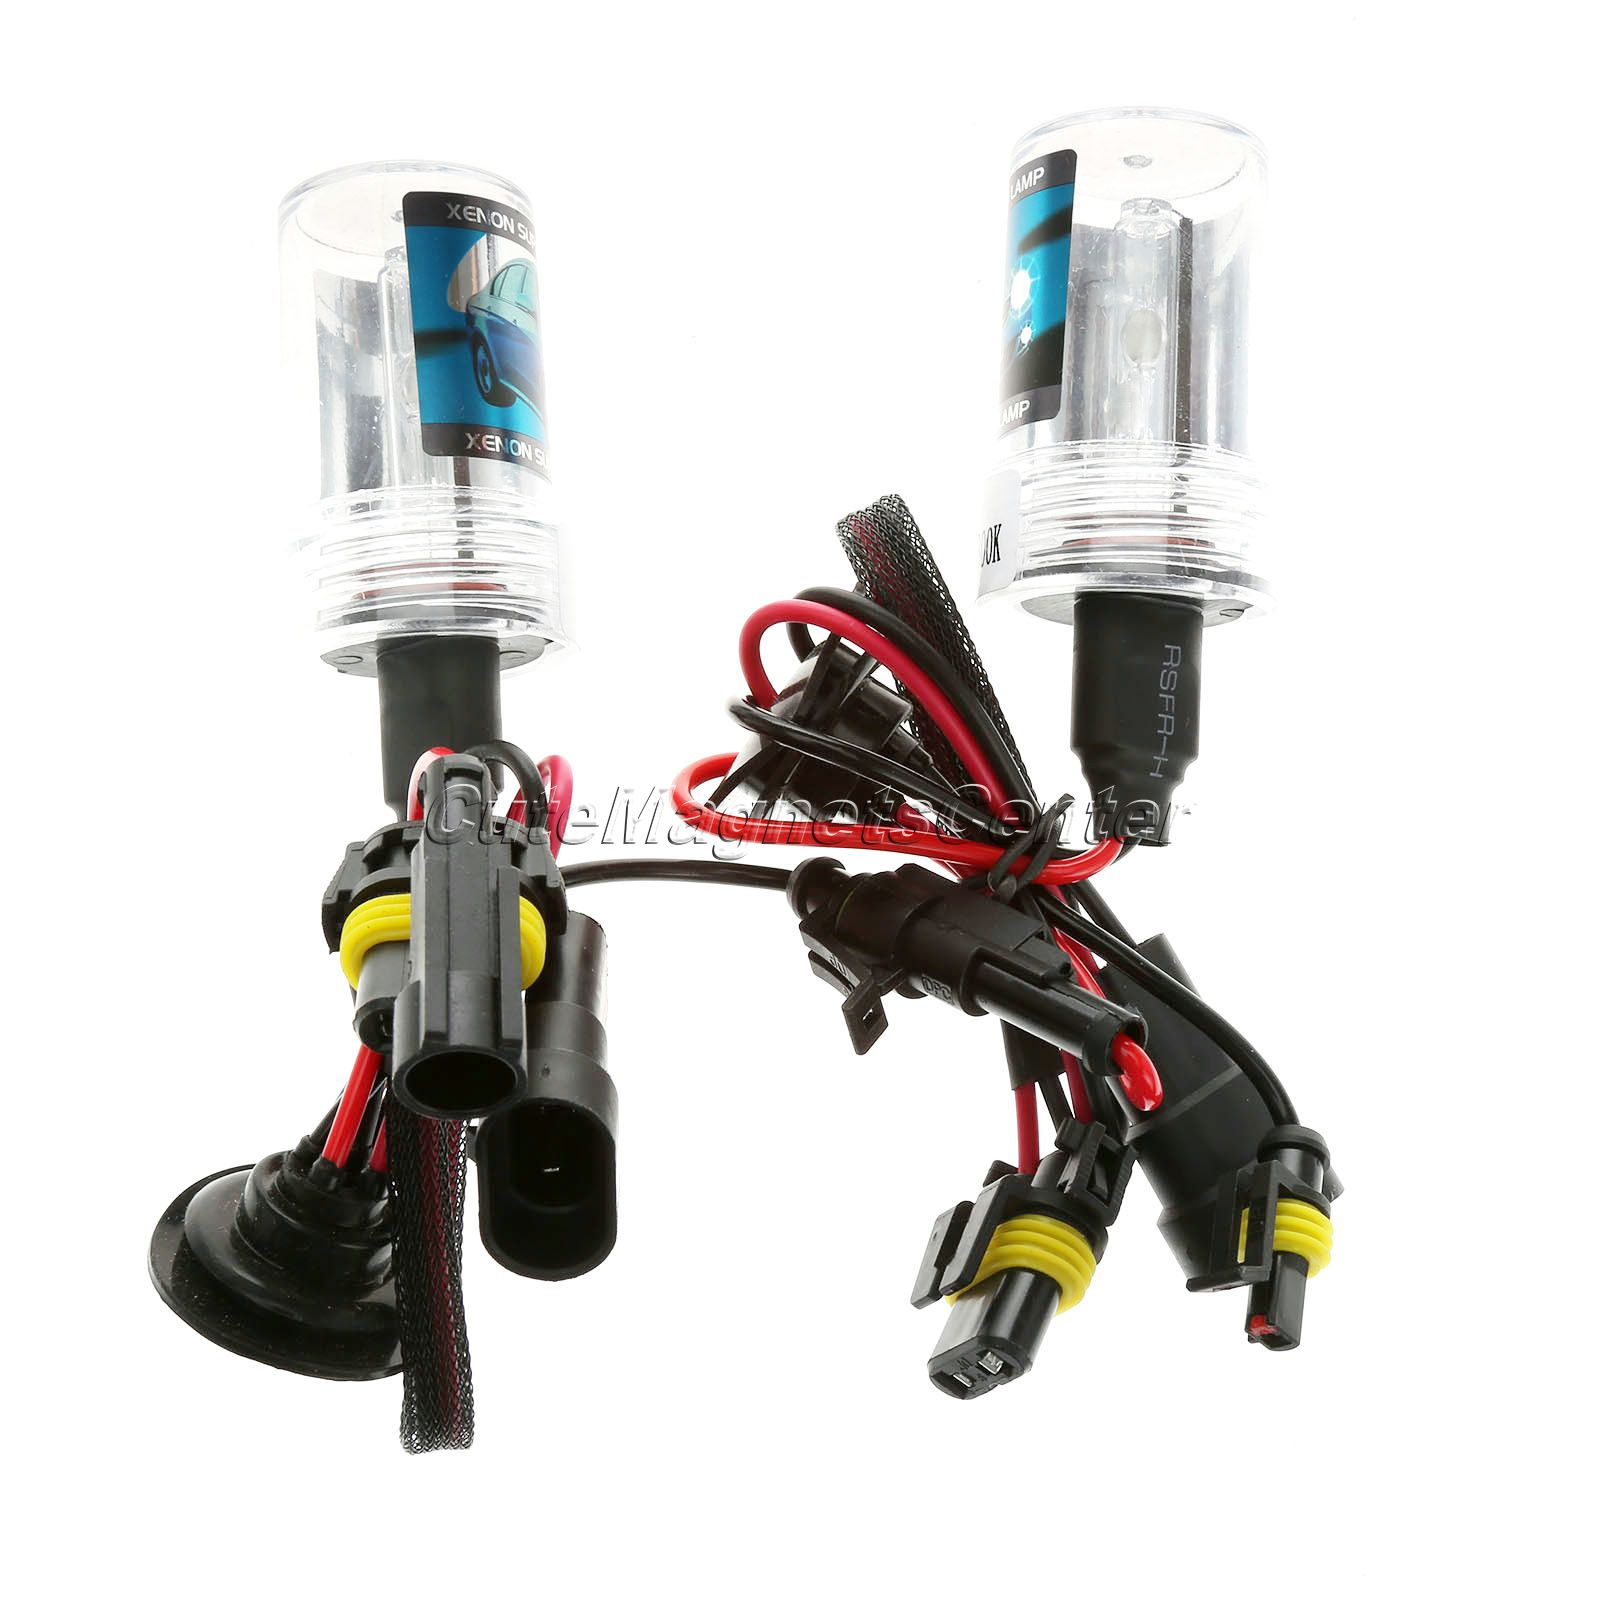 12V 9005/H10 Car Led  Lights Source XENON HID REPLACEMENT BULBS Cars Head Lamp Auto Light Source 3000/4300/5000/6000/8000/12000K<br><br>Aliexpress